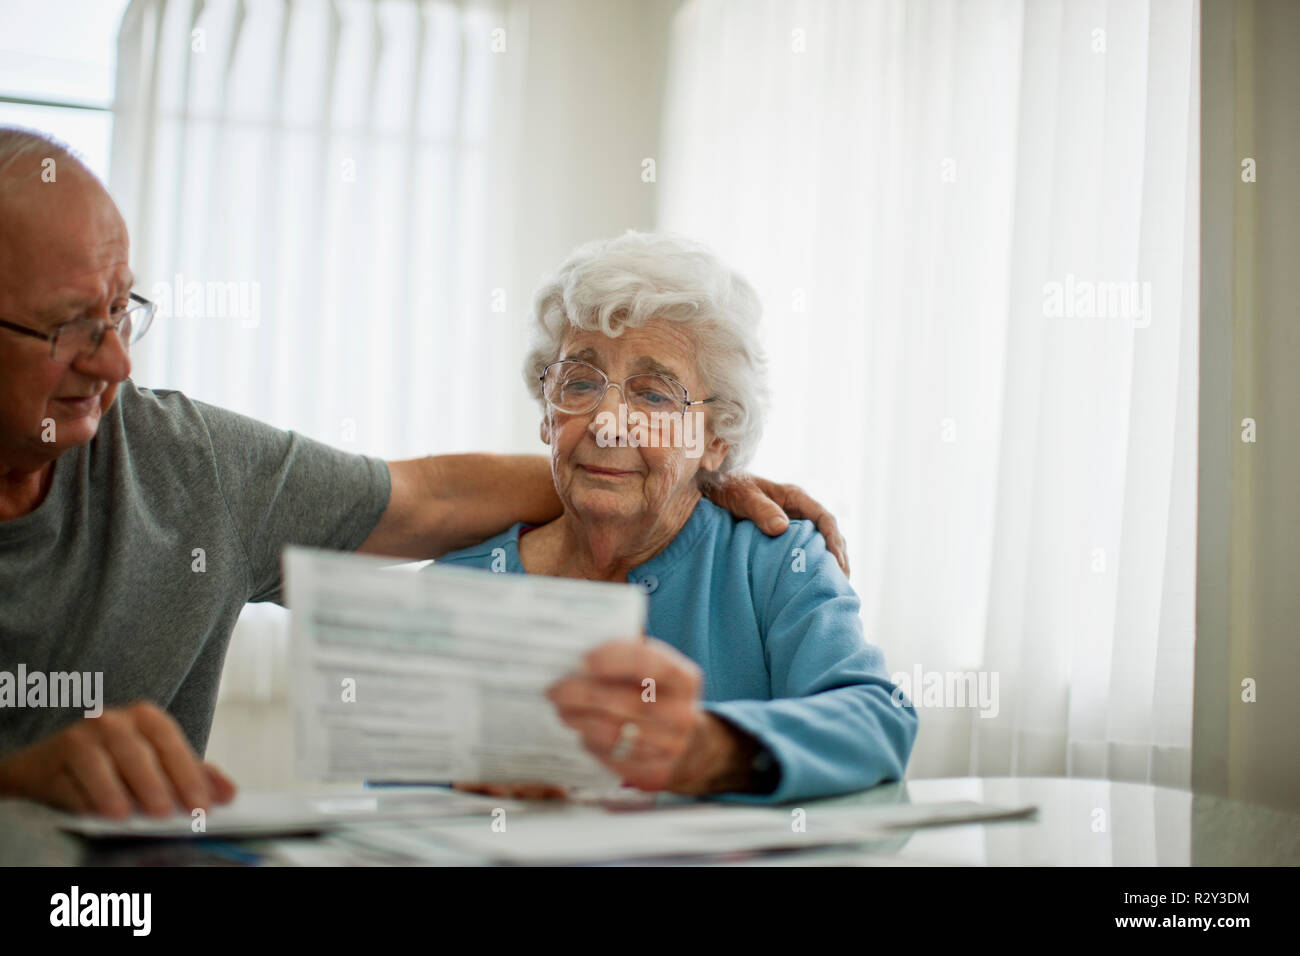 Anxious elderly couple try to comfort each other as they are worried about a bill that they have received. - Stock Image